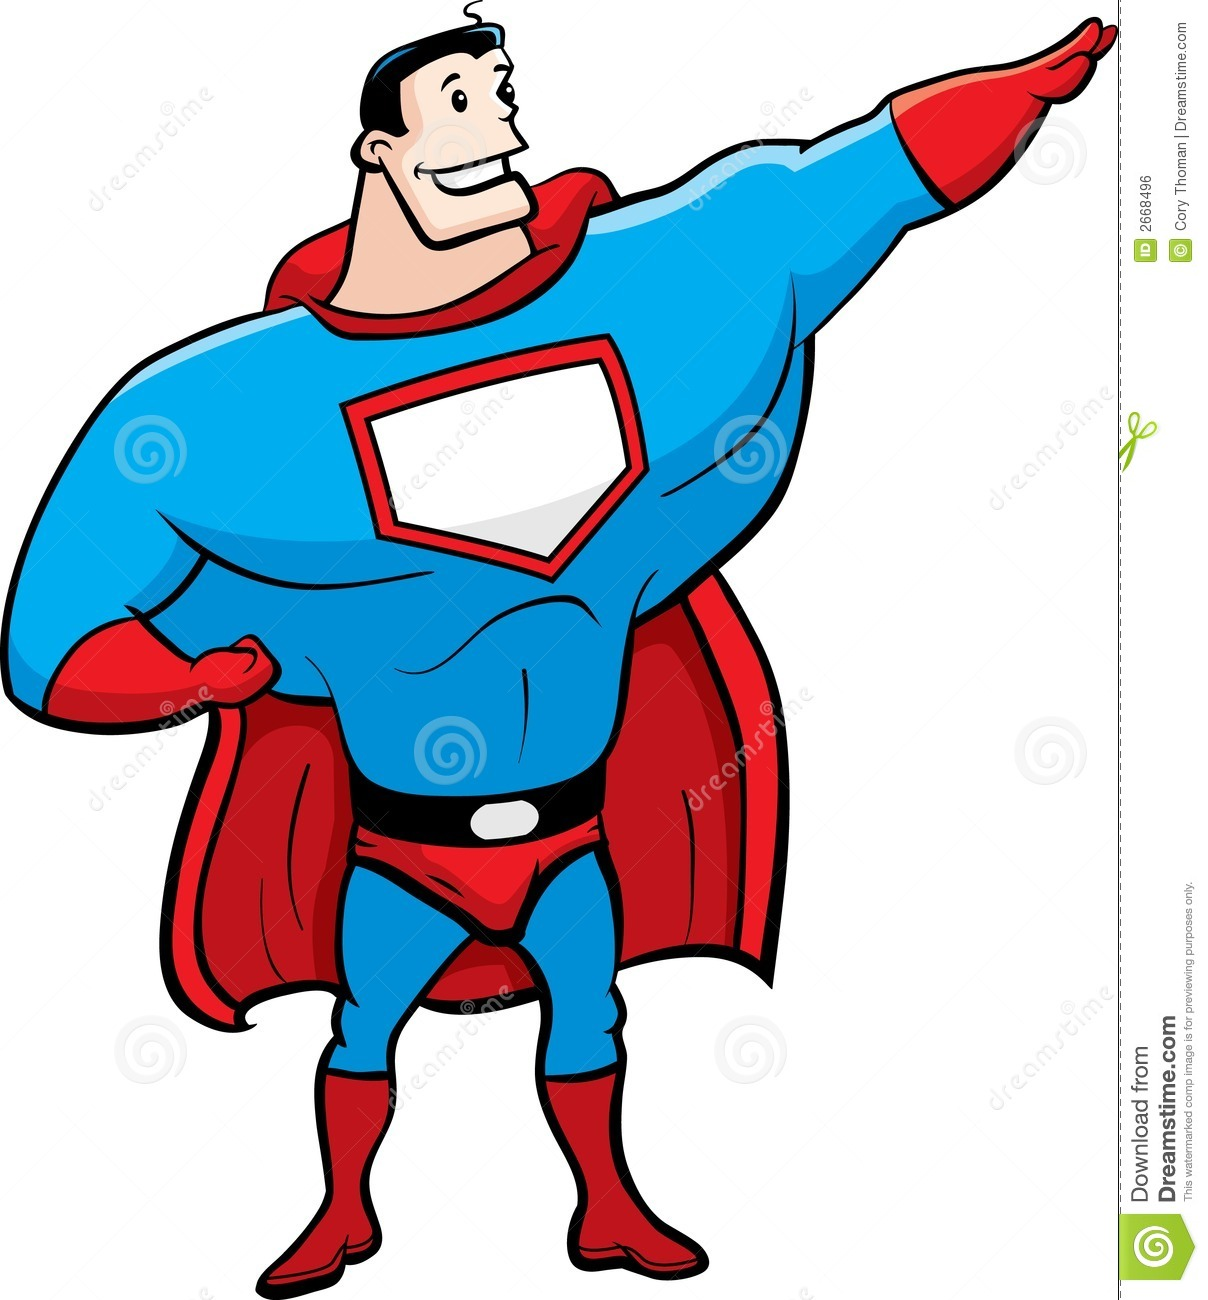 superhero clipart free download - photo #48